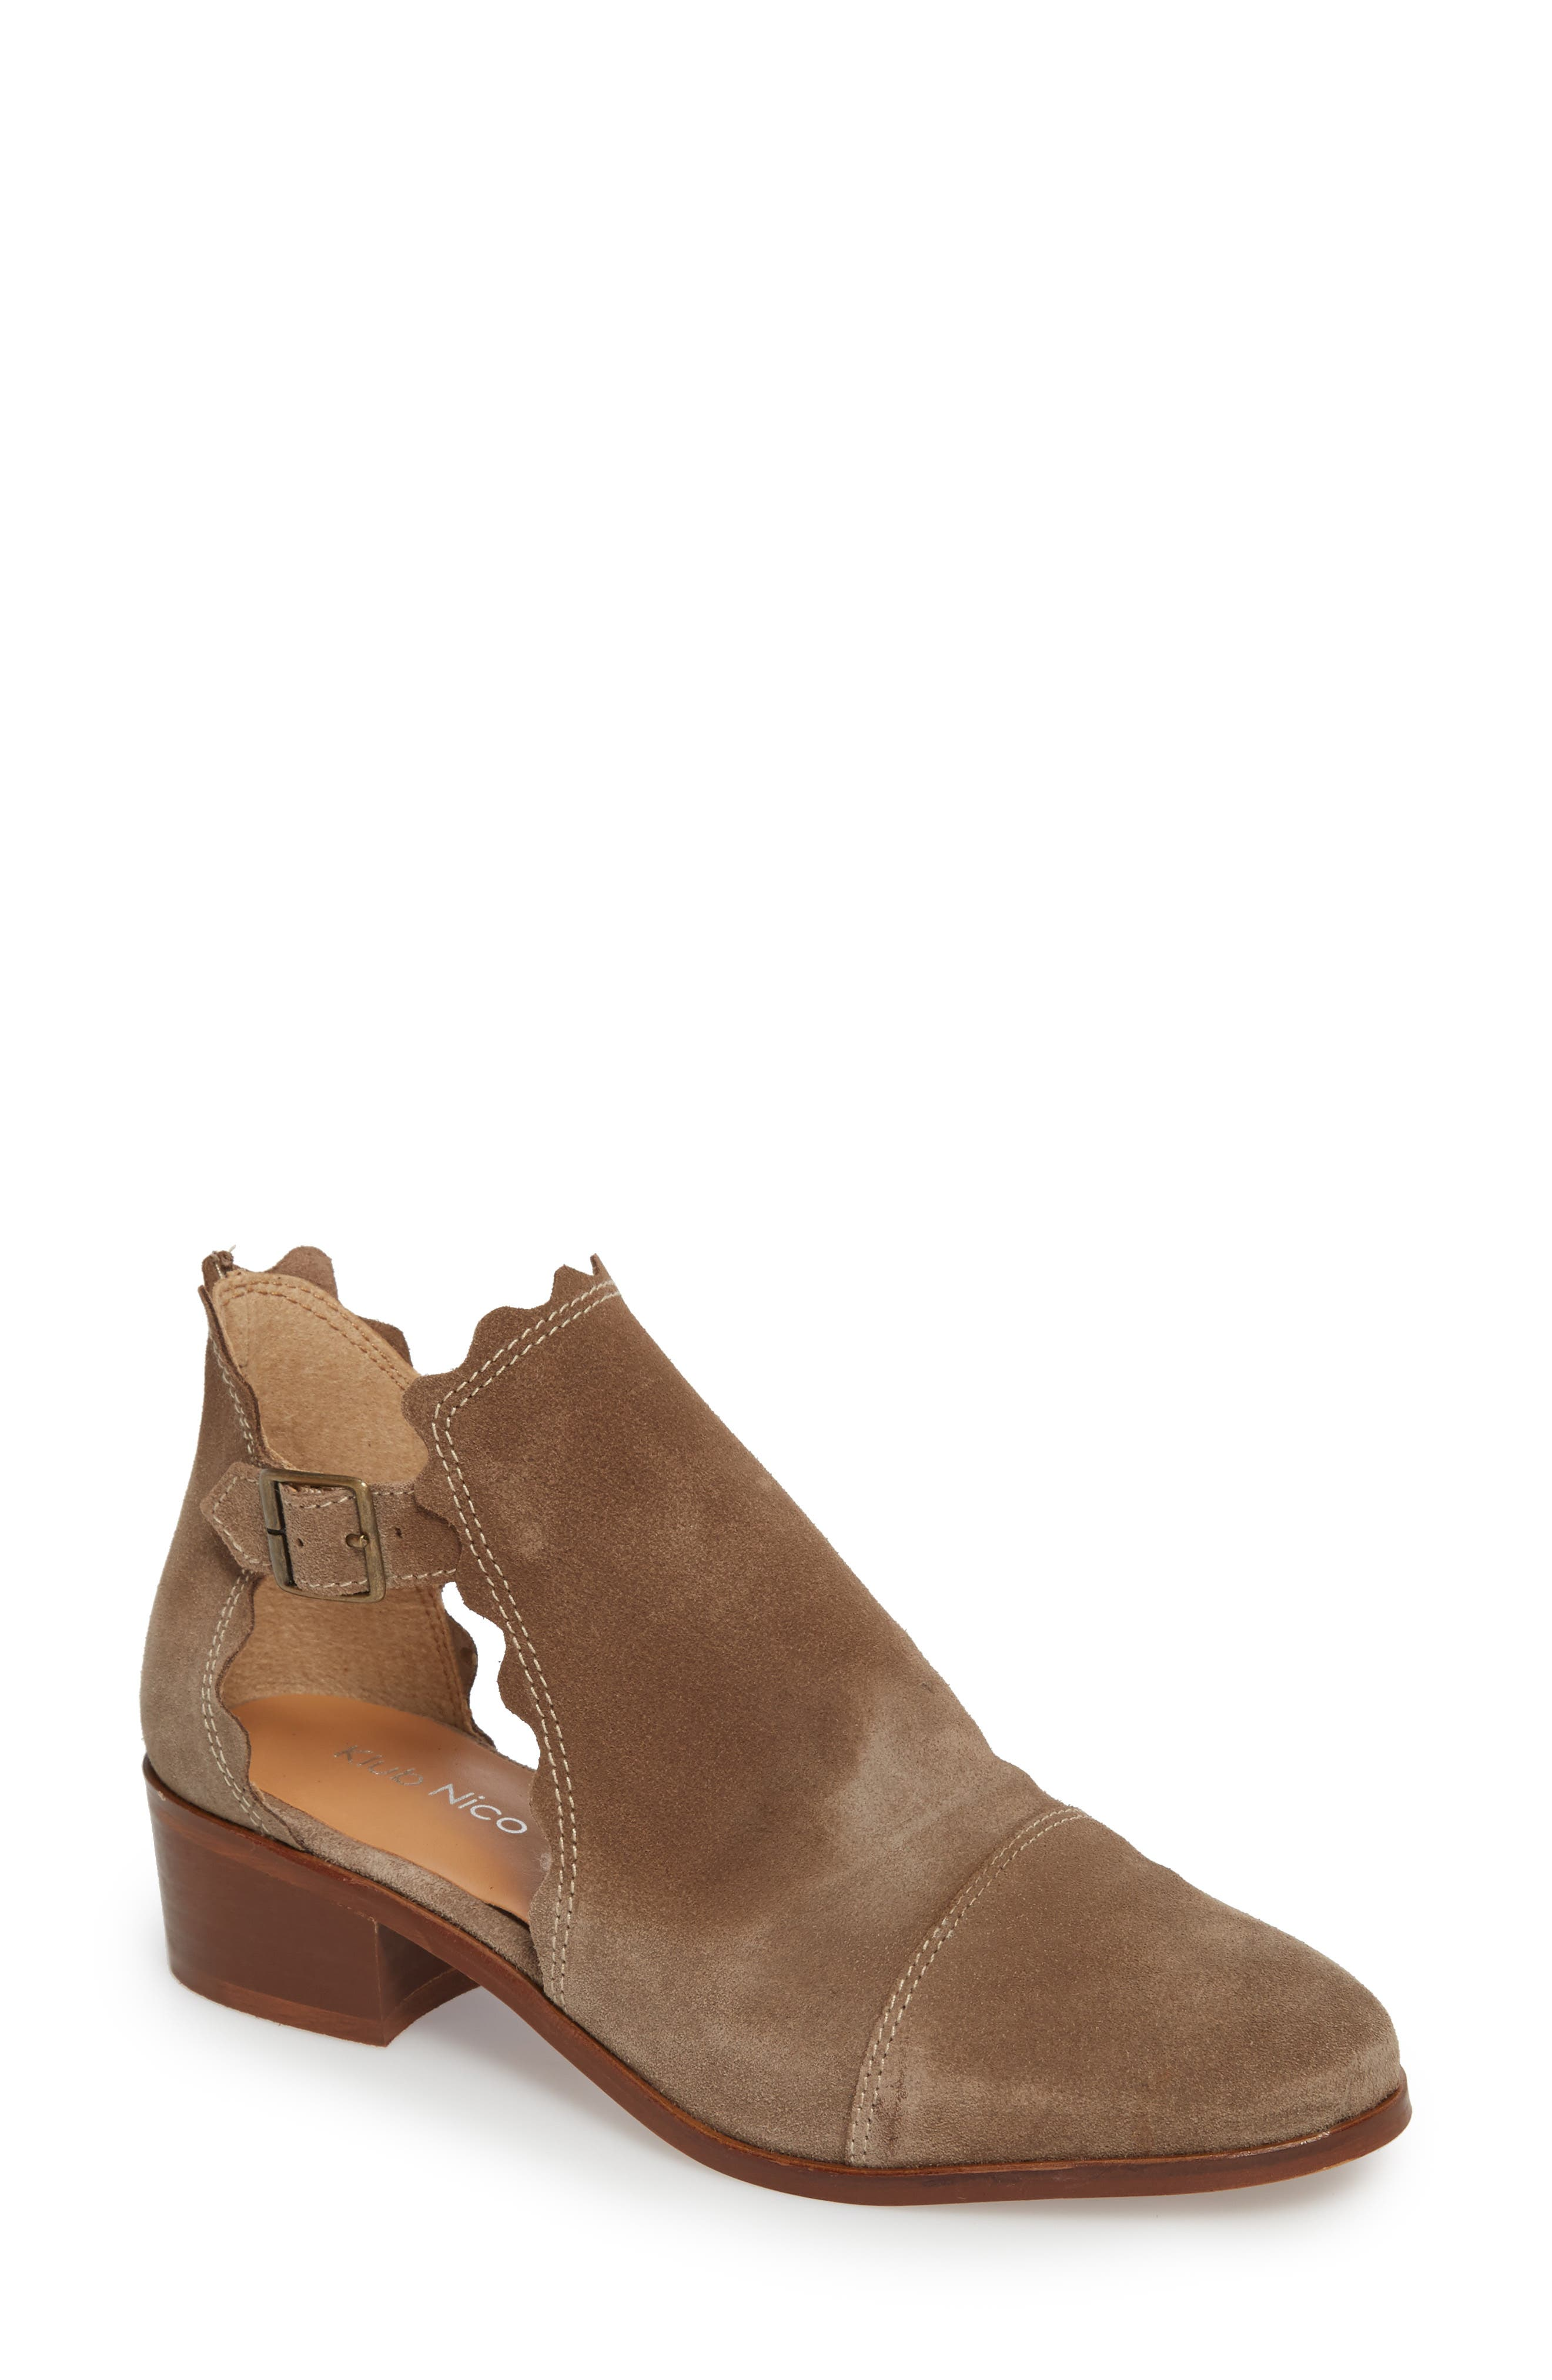 Beau Open Side Bootie,                         Main,                         color, Taupe Suede